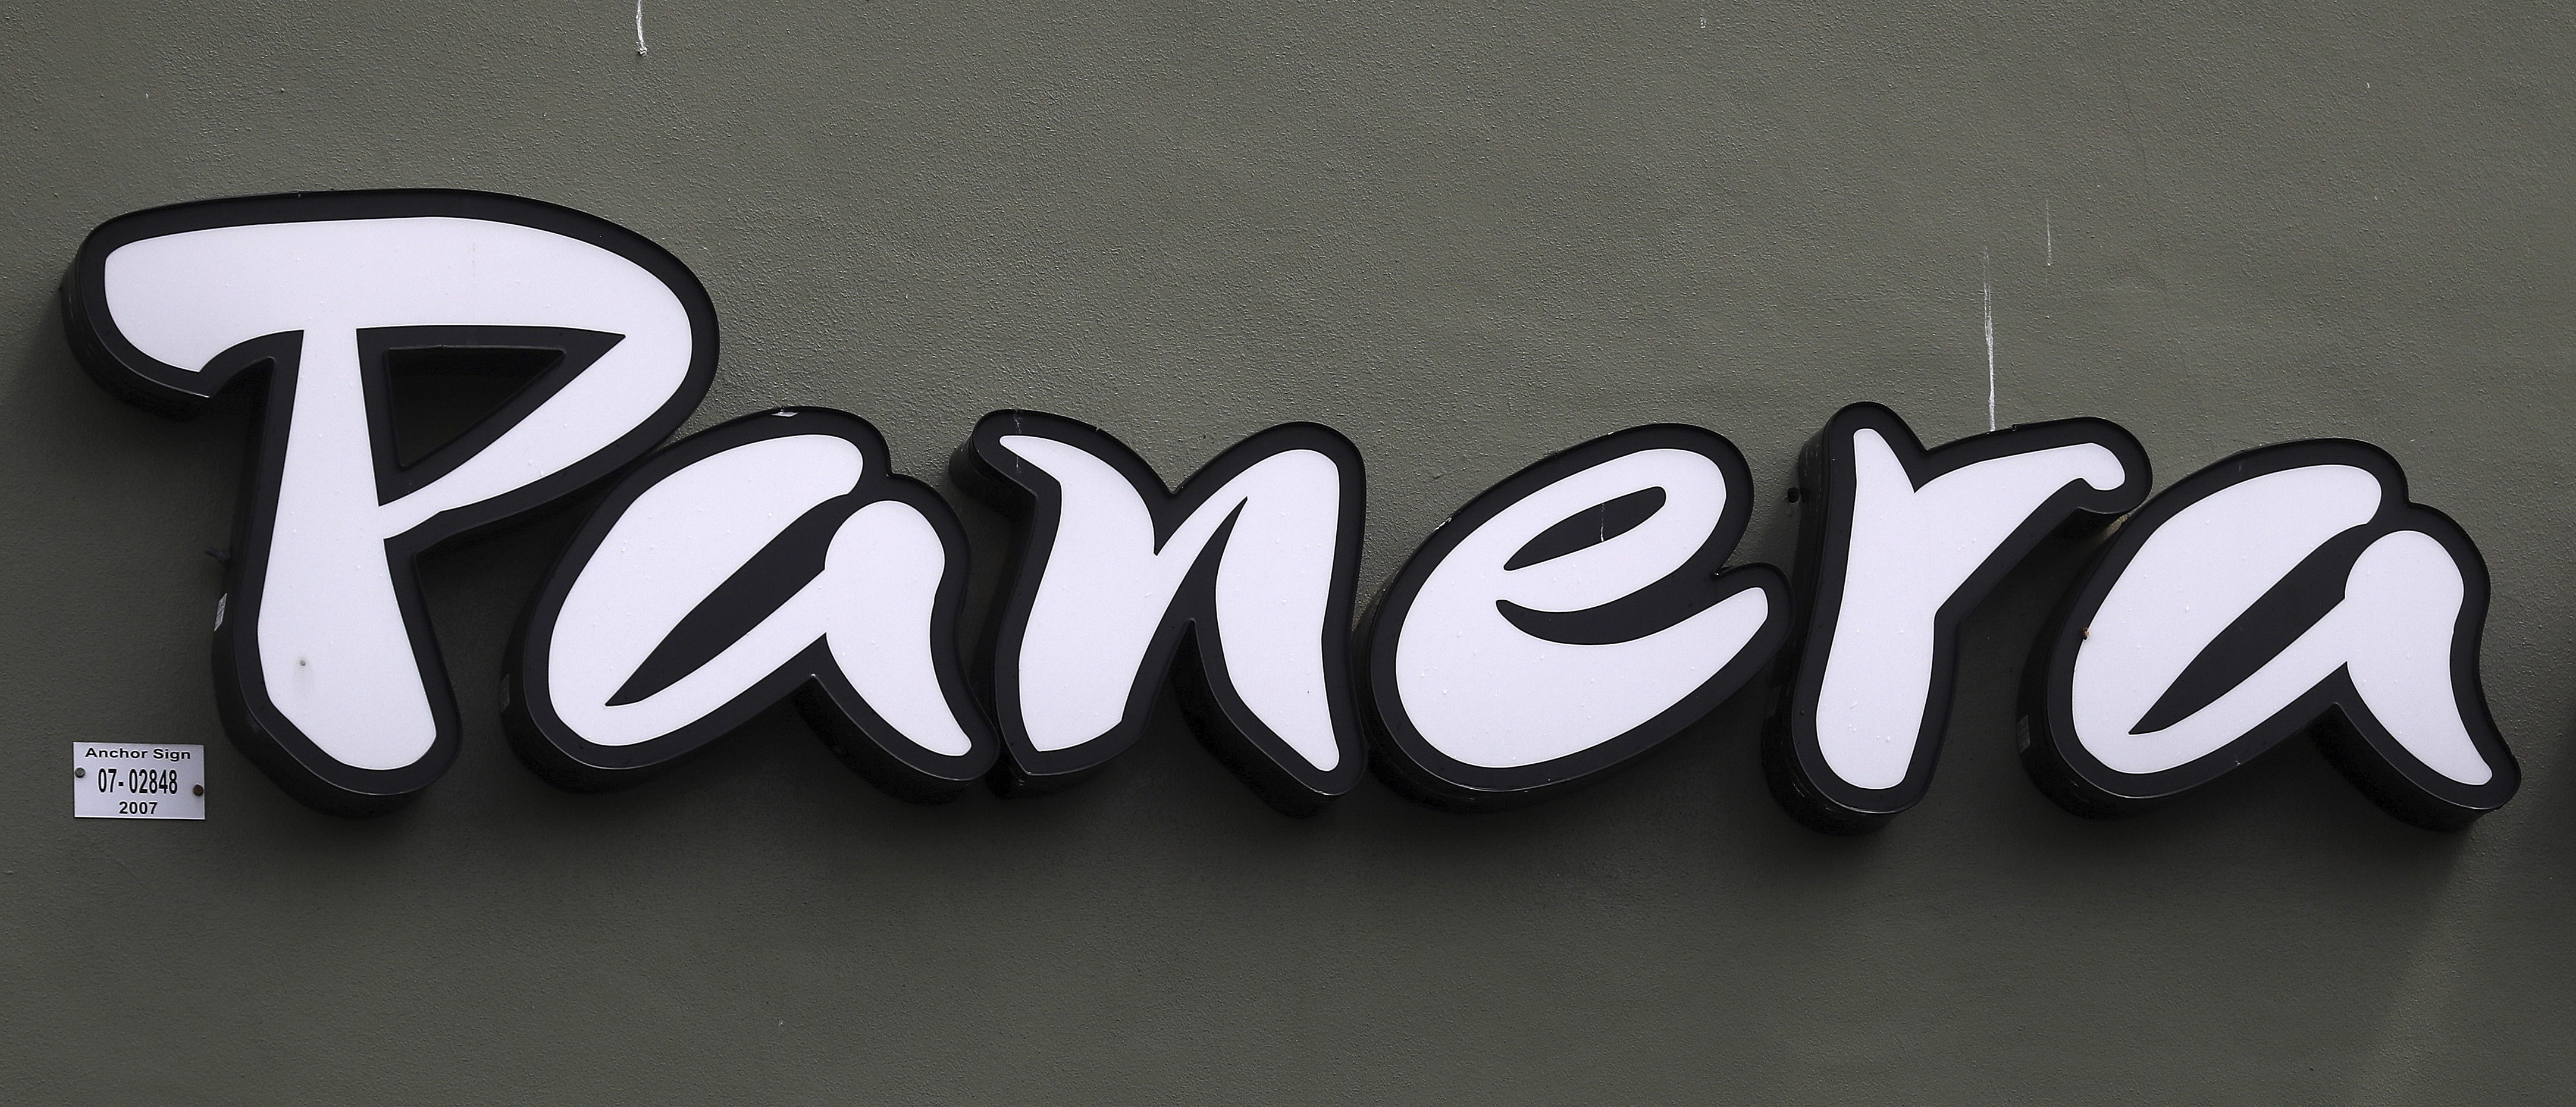 A Panera restaurant logo is pictured on a building in North Miami, Florida March 19, 2016. REUTERS/Carlo Allegri - GF10000352444